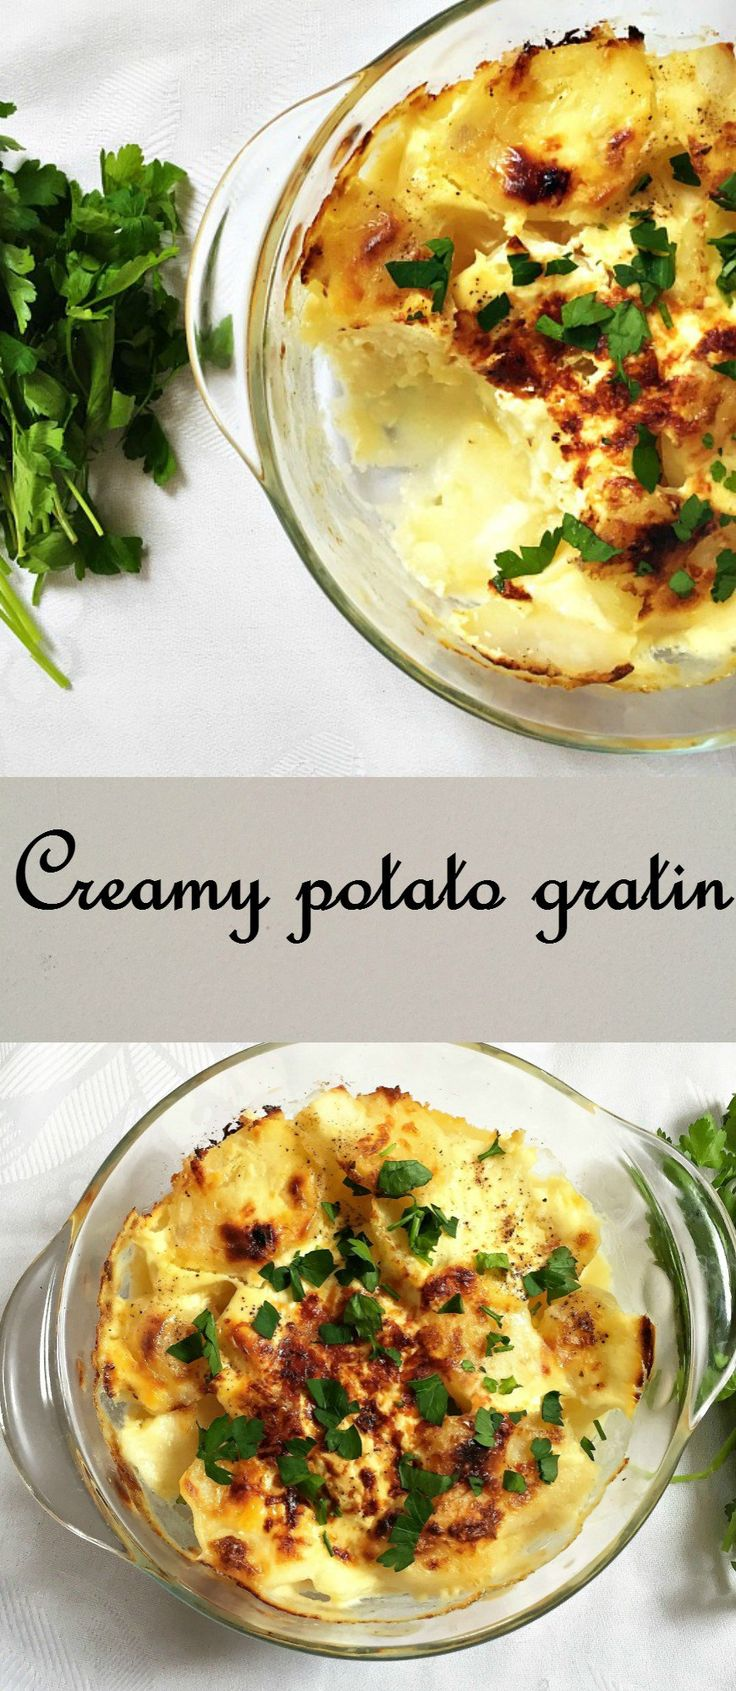 Creamy potato gratin, a posh side dish that has a subtle garlic kick and a cheesy texture. A must try vegetarian recipe for lunch or dinner.